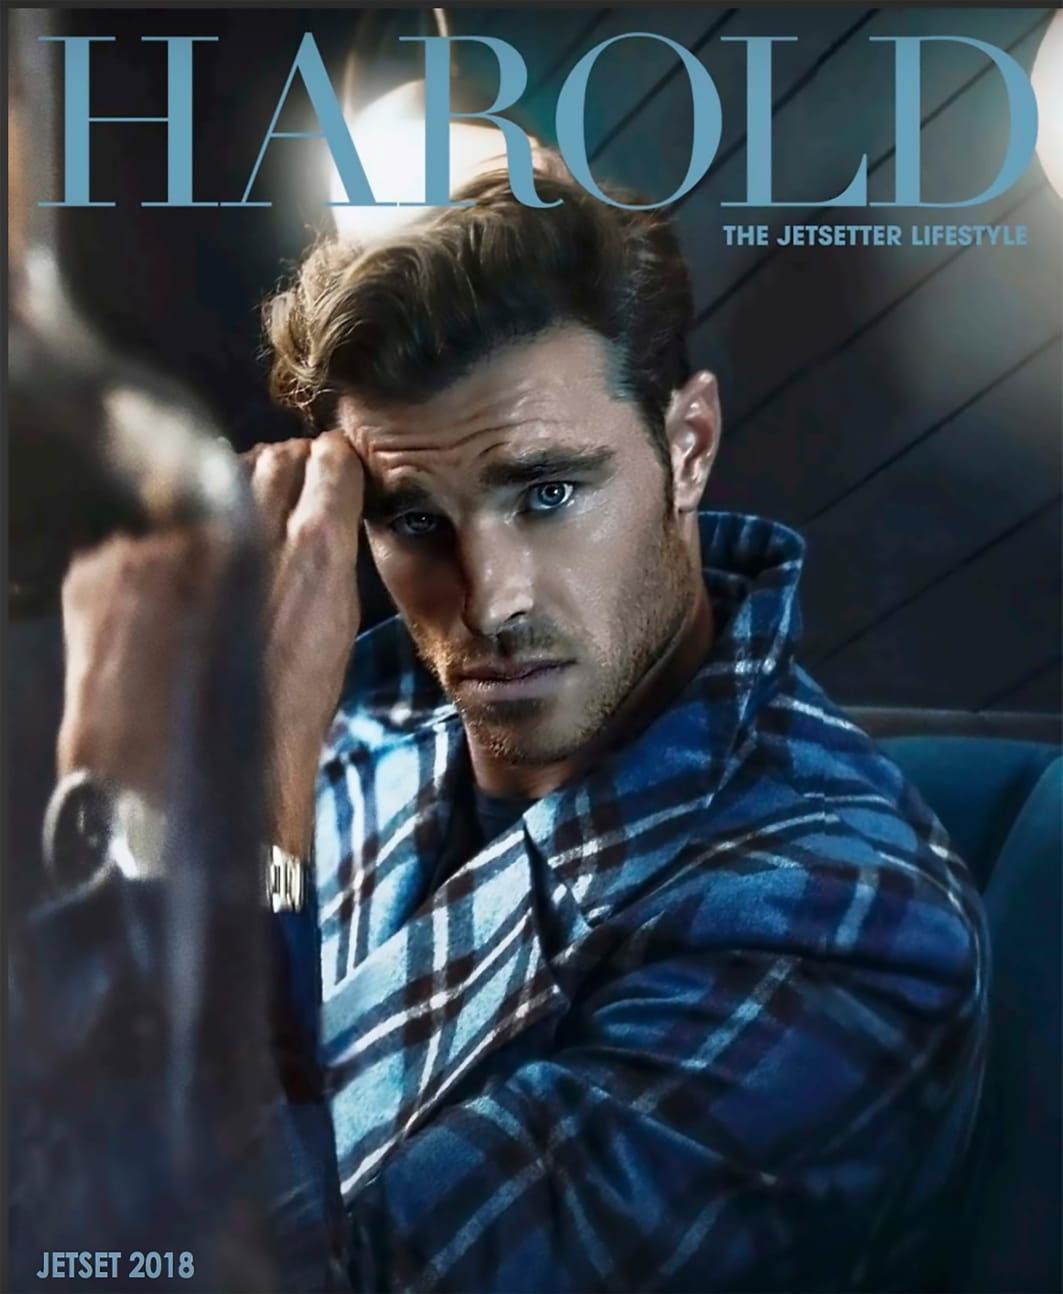 harold-magazine-front-cover-britsh-actor-david-frampton